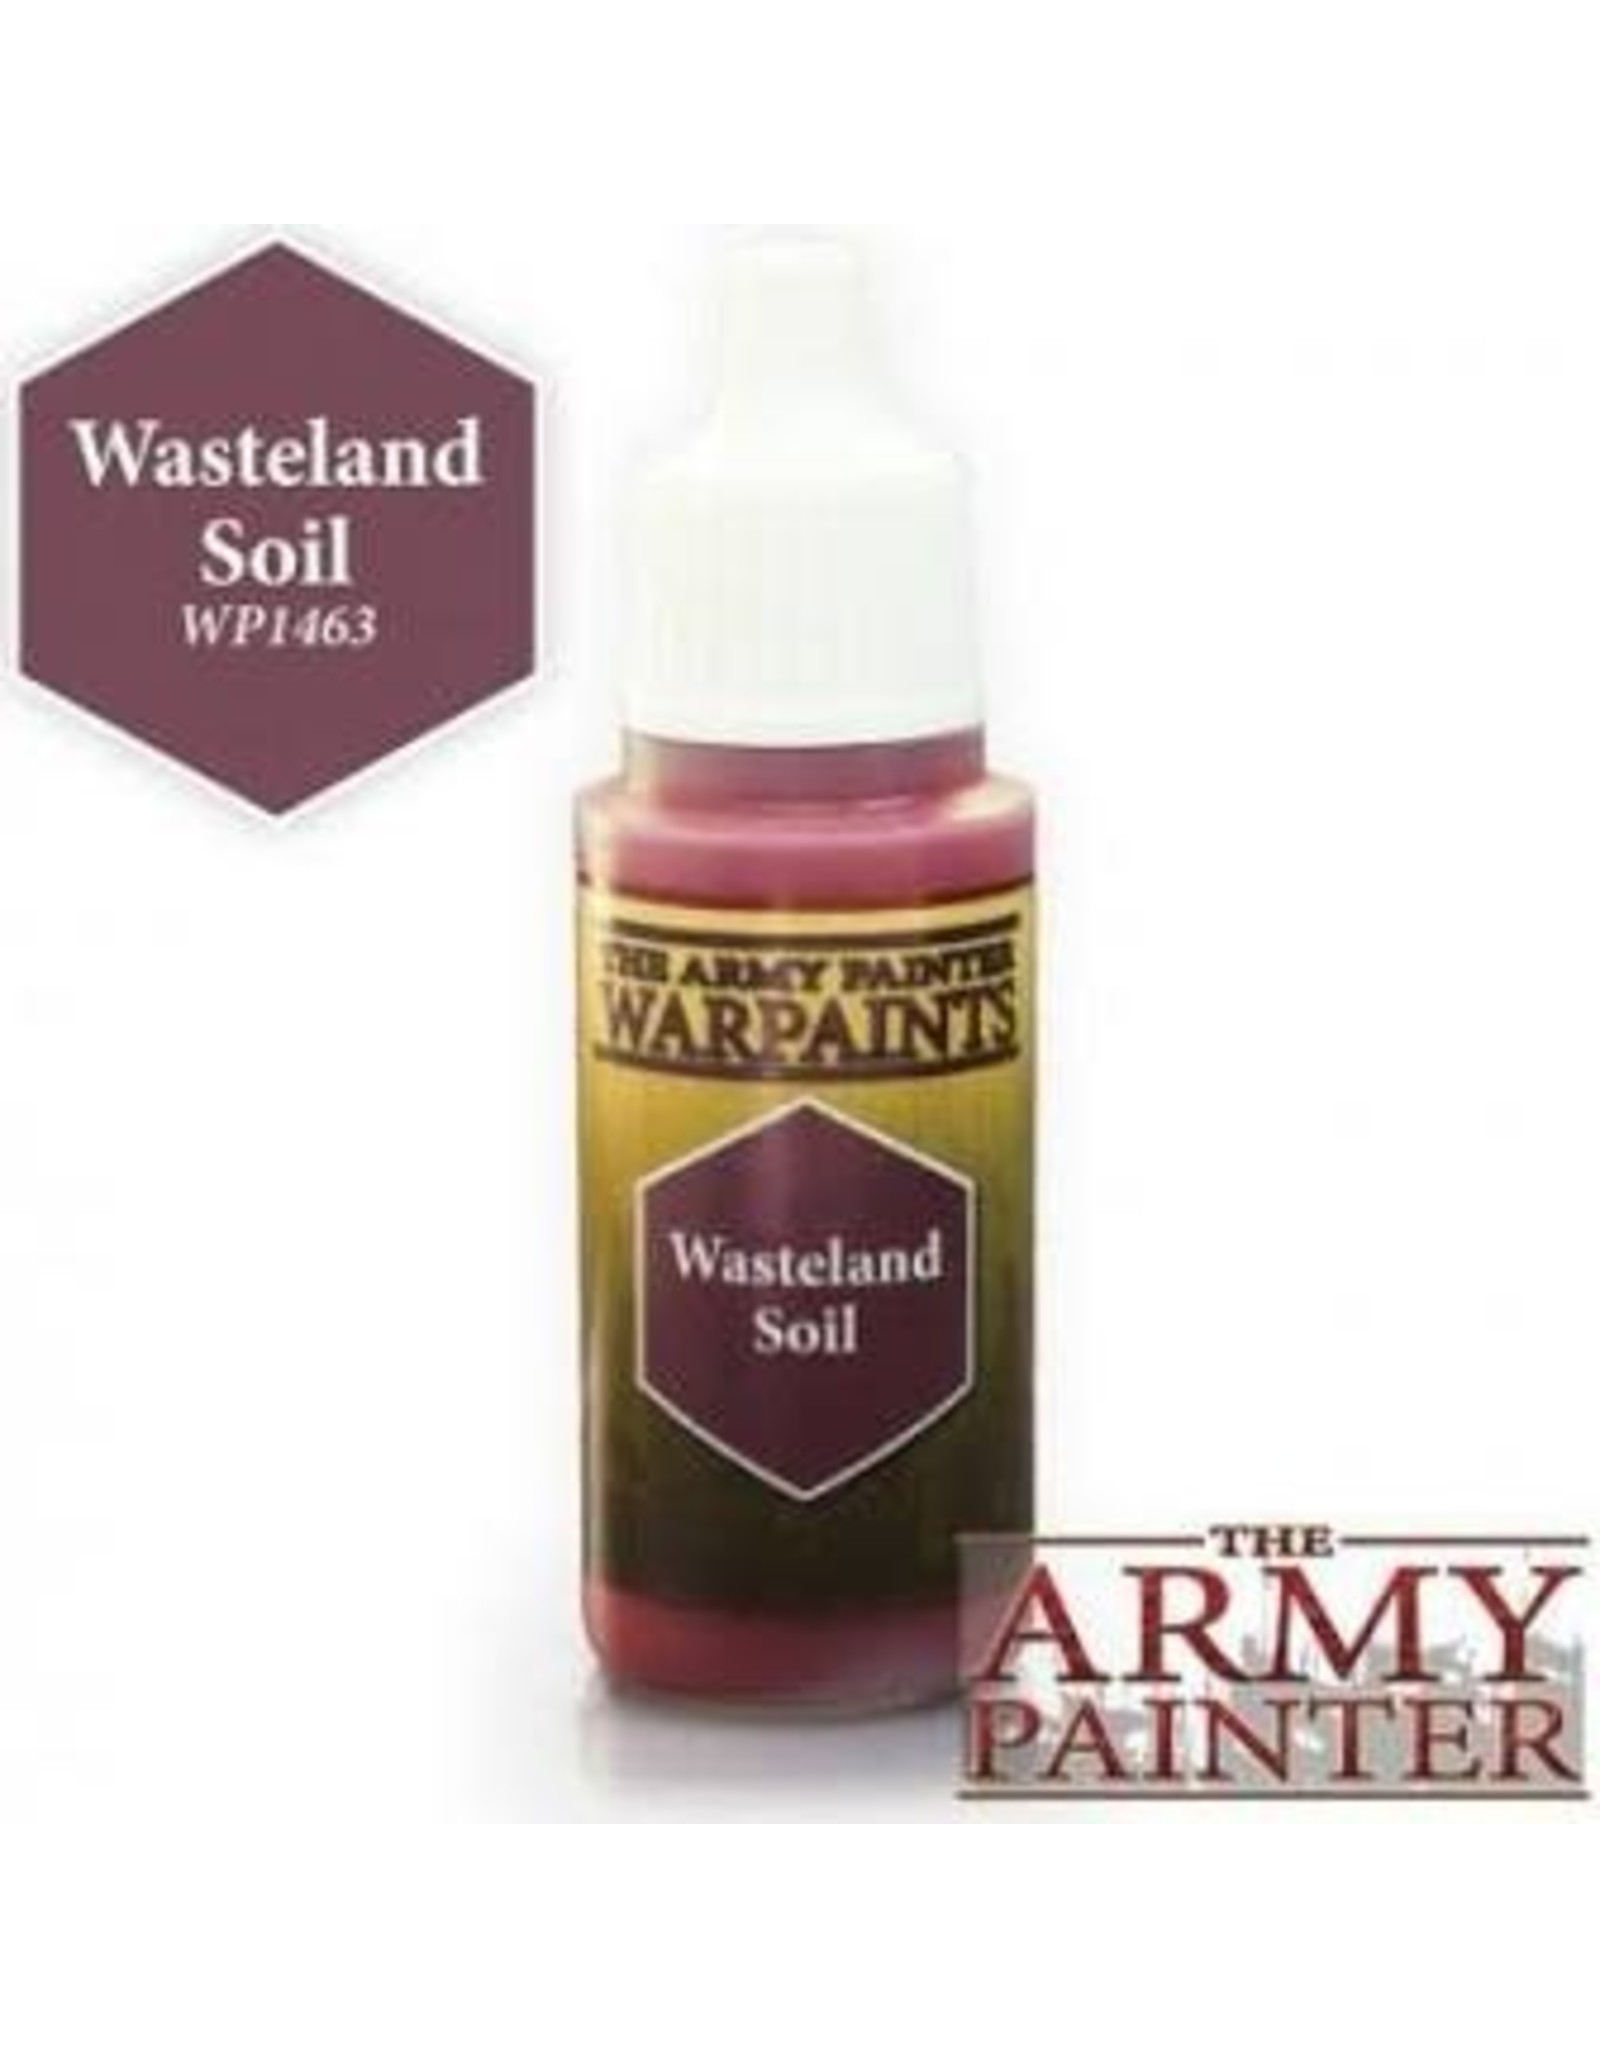 Army Painter Army Painter: Wasteland Soil